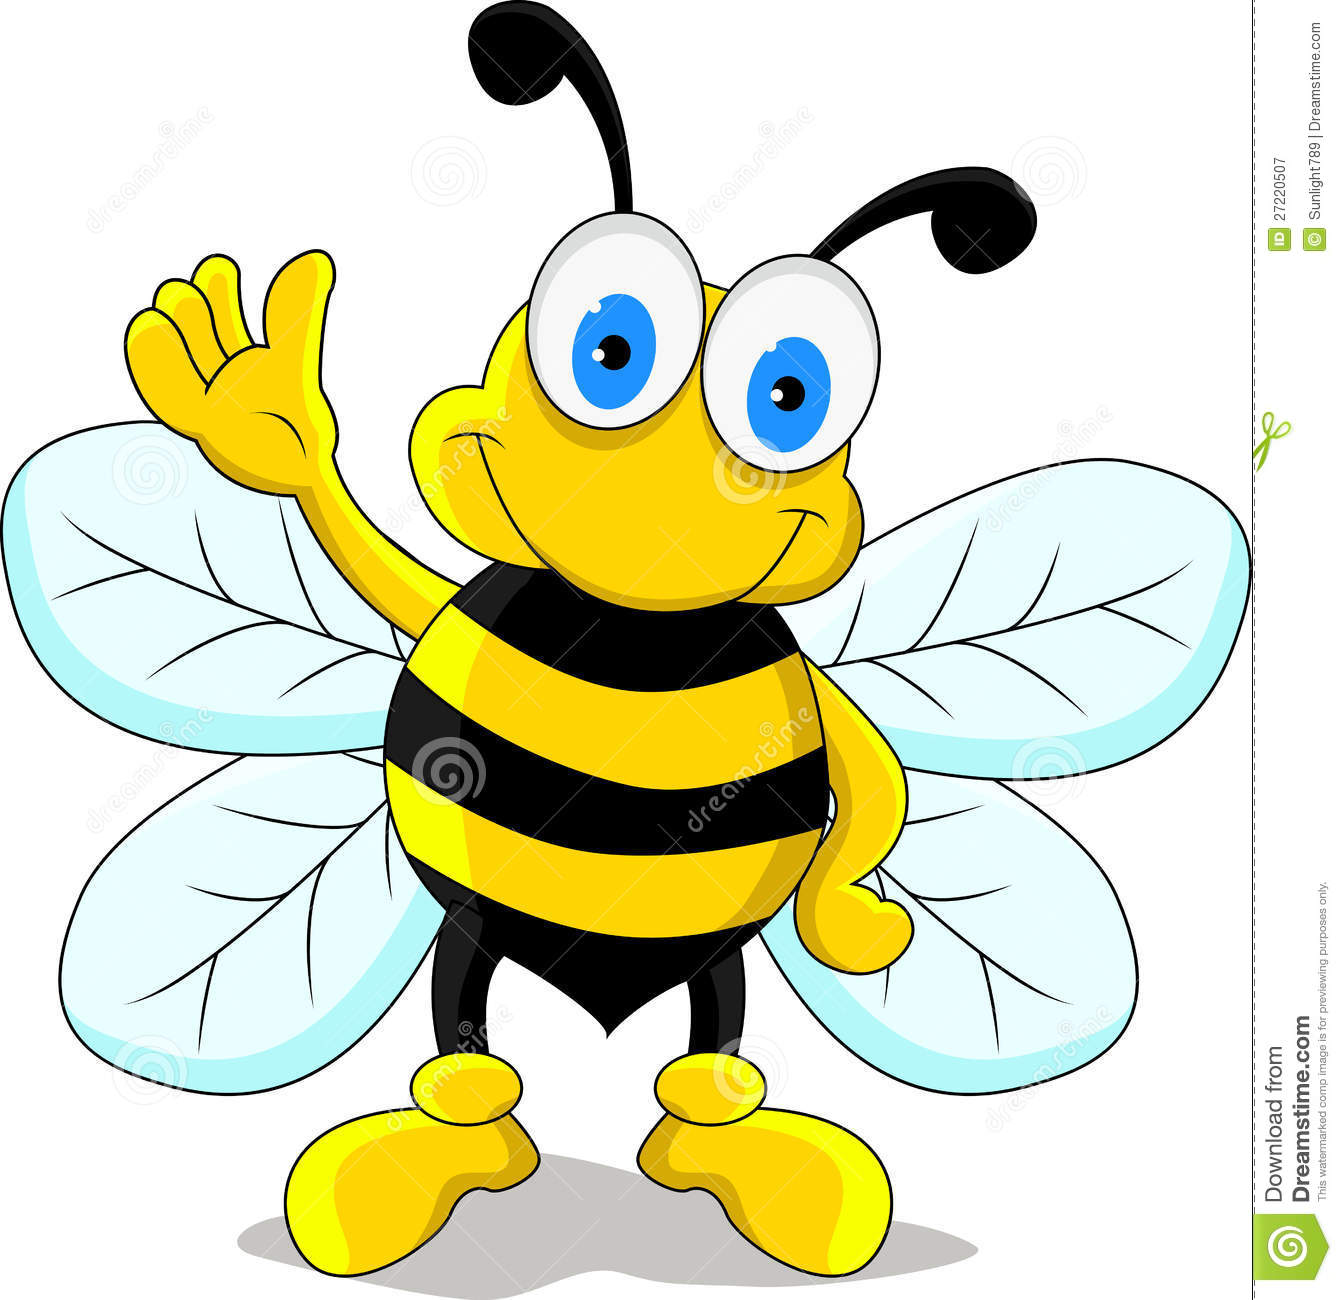 Cartoon Characters Pictures : Funny bee cartoon character stock illustration